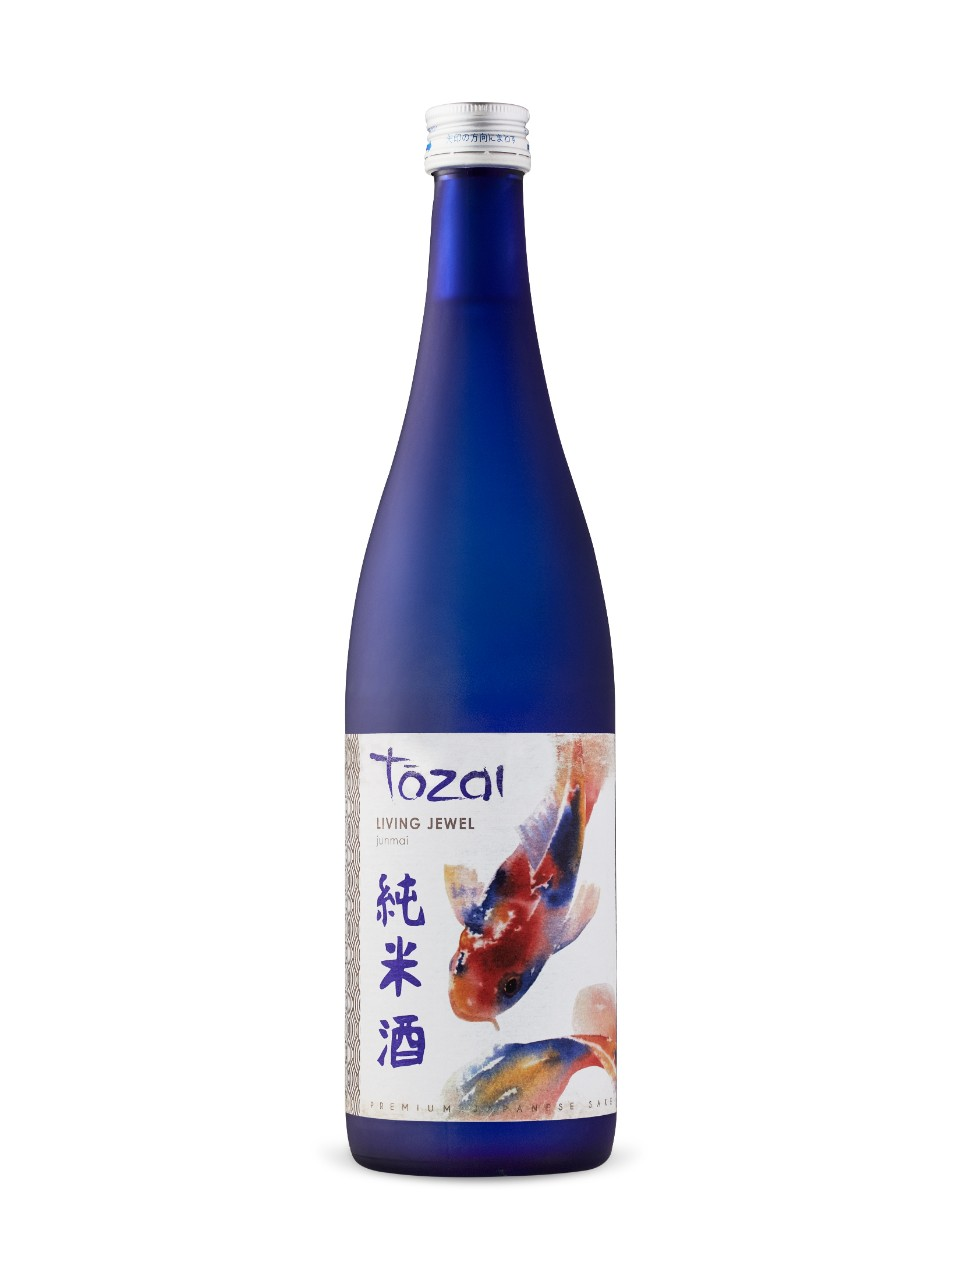 Image for Tozai Living Jewel Sake from LCBO